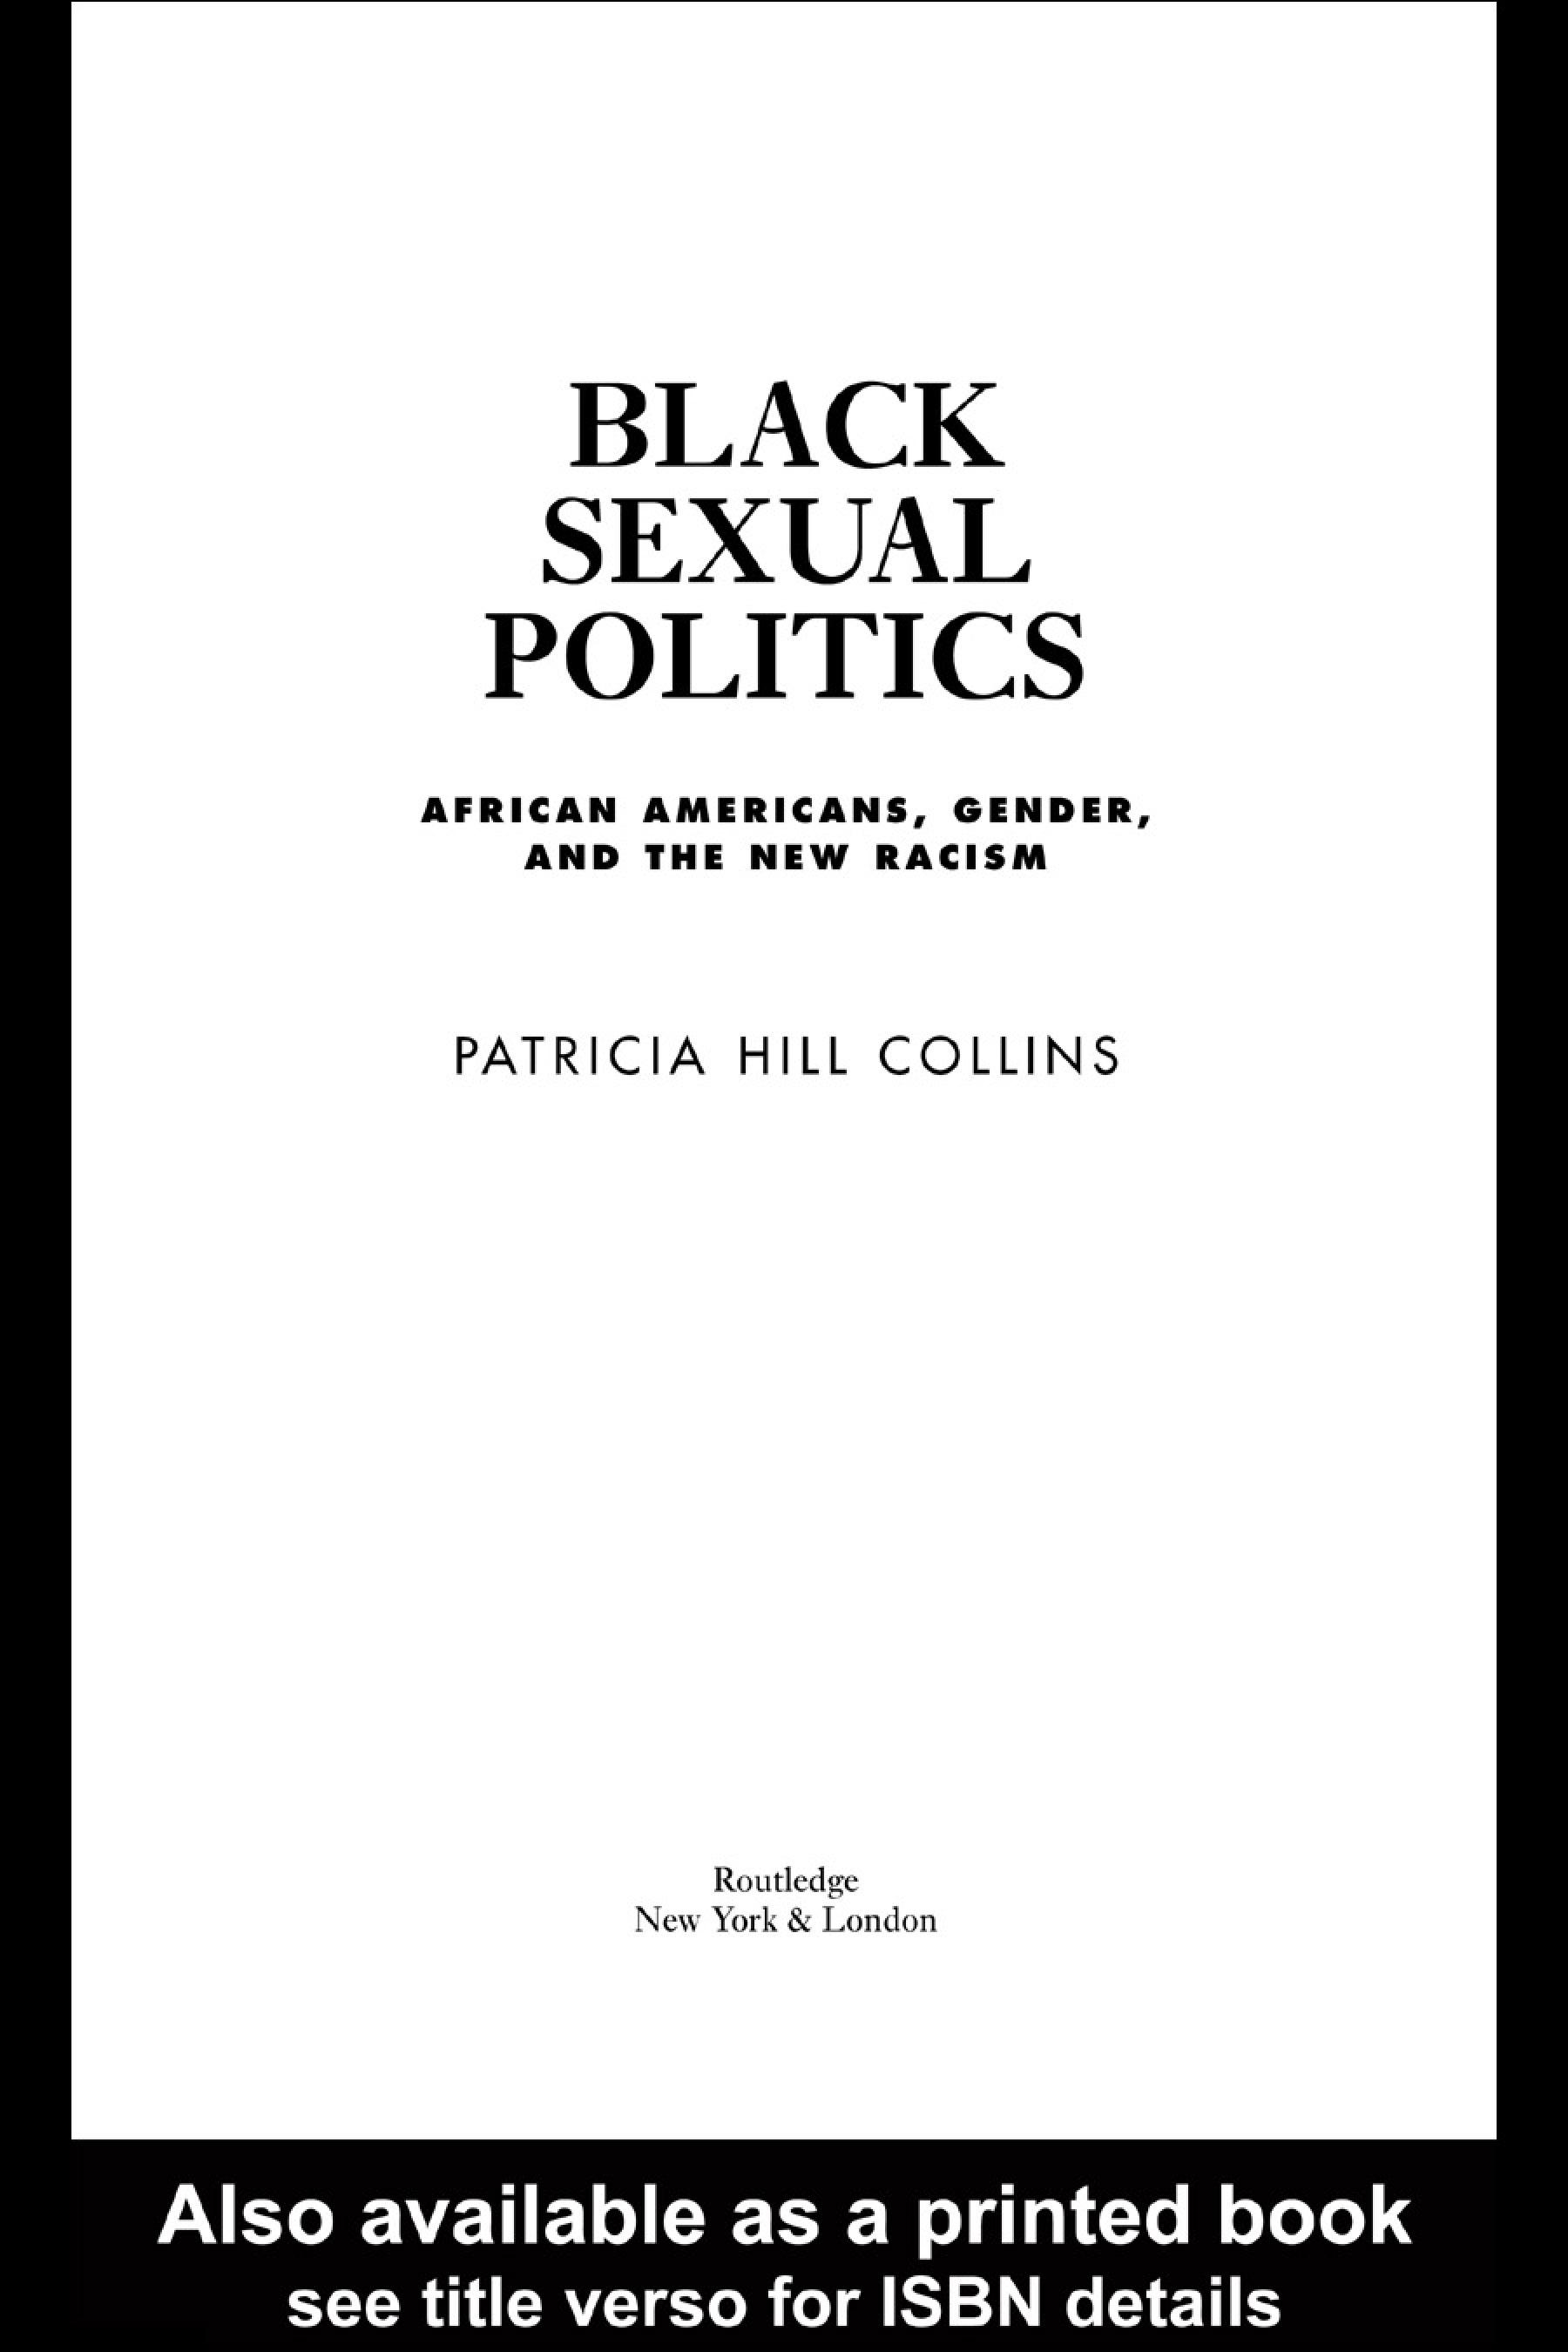 Black Sexual Politics: African Americans, Gender, and the New Racism